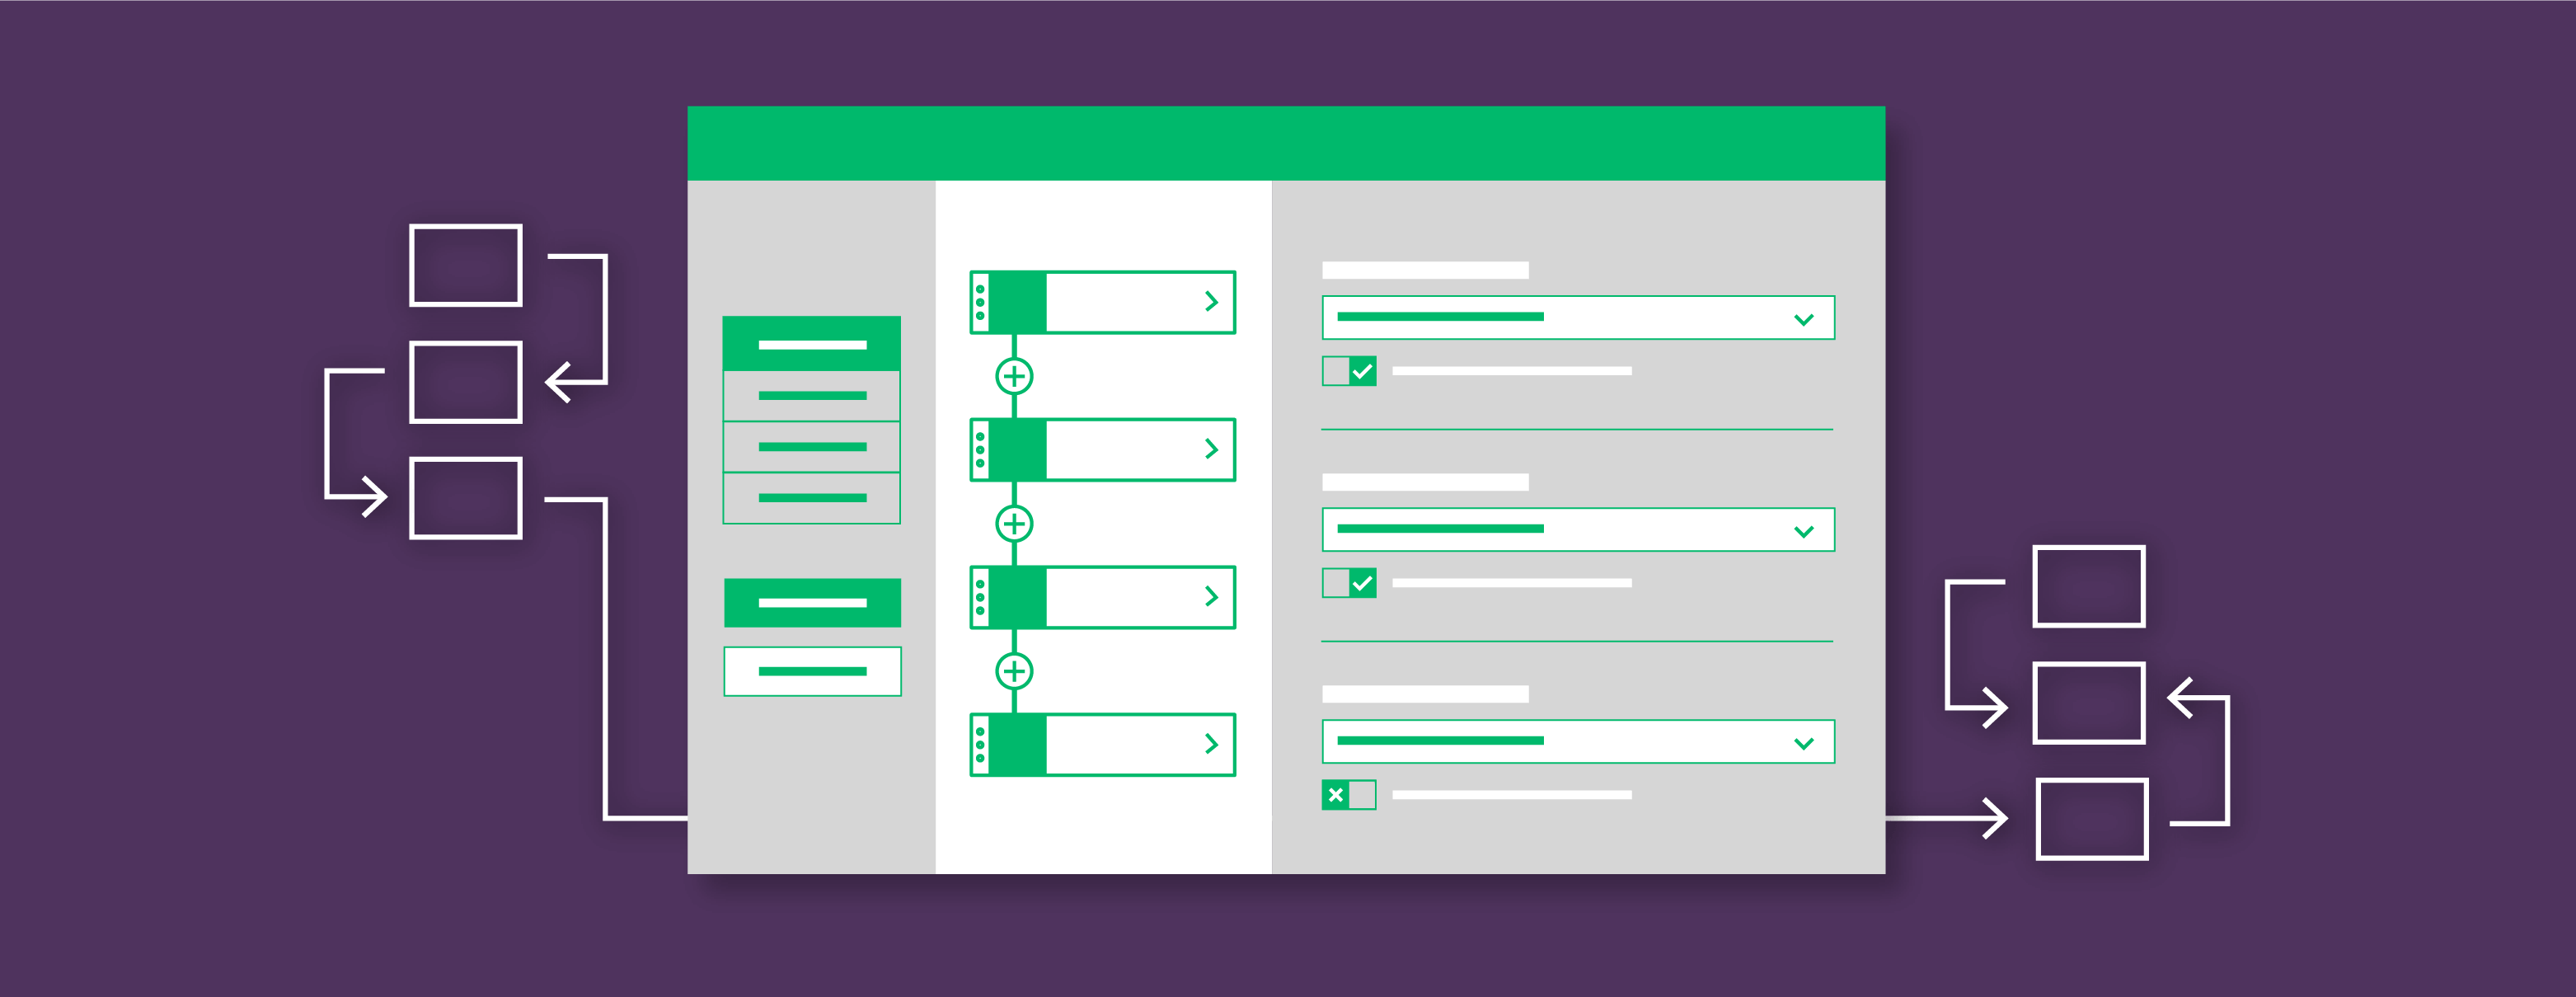 How to Create Data-Driven User Interfaces in Vue